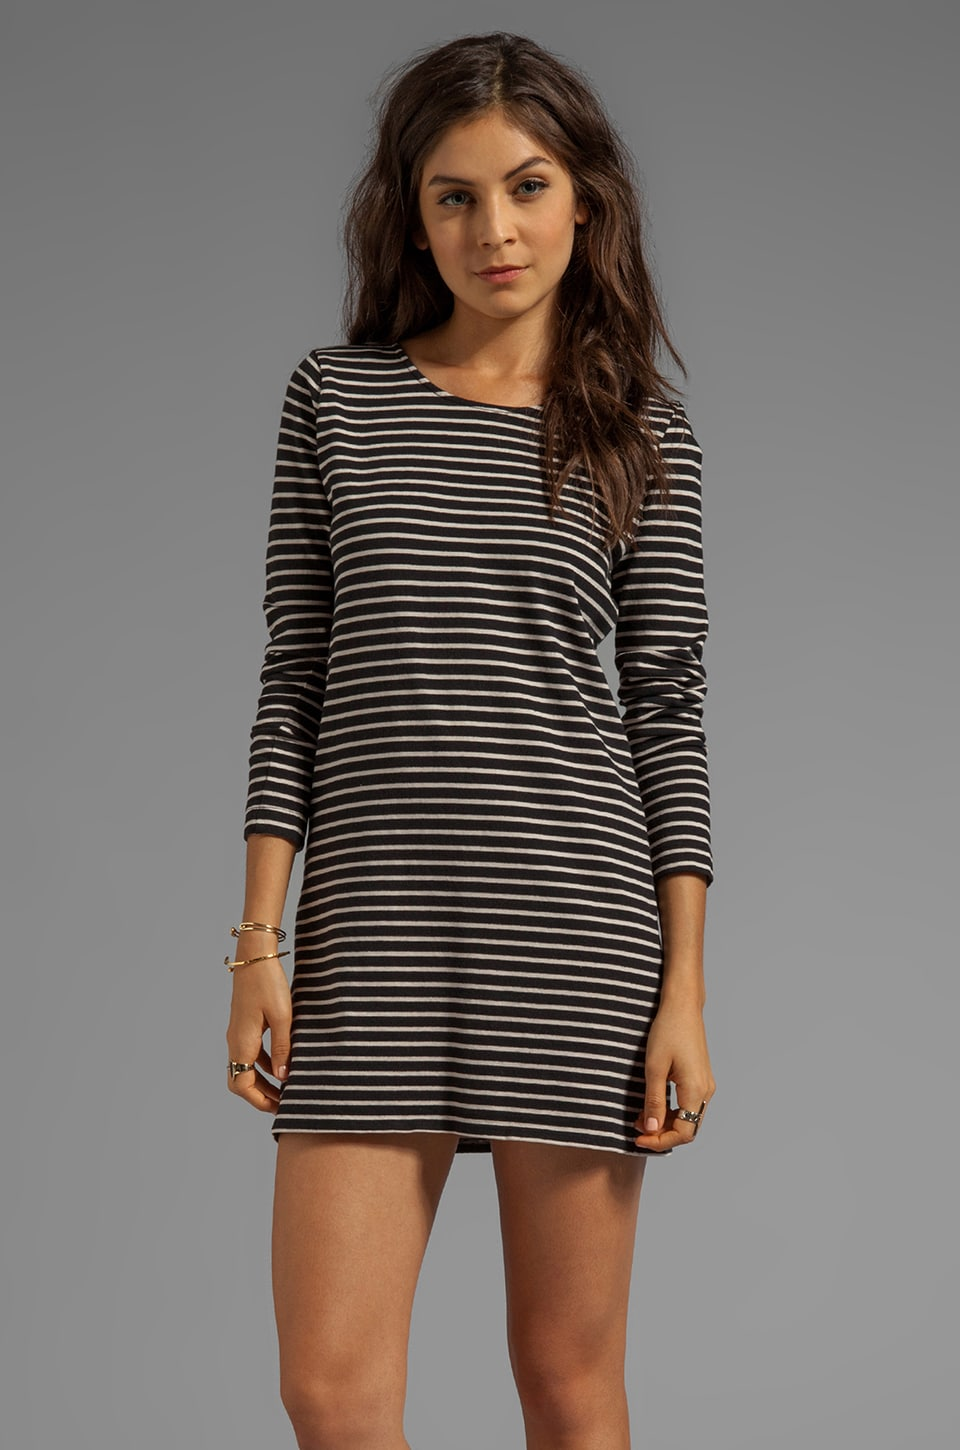 Soft Joie Addington Stripe Dress in Caviar/Grey Morn